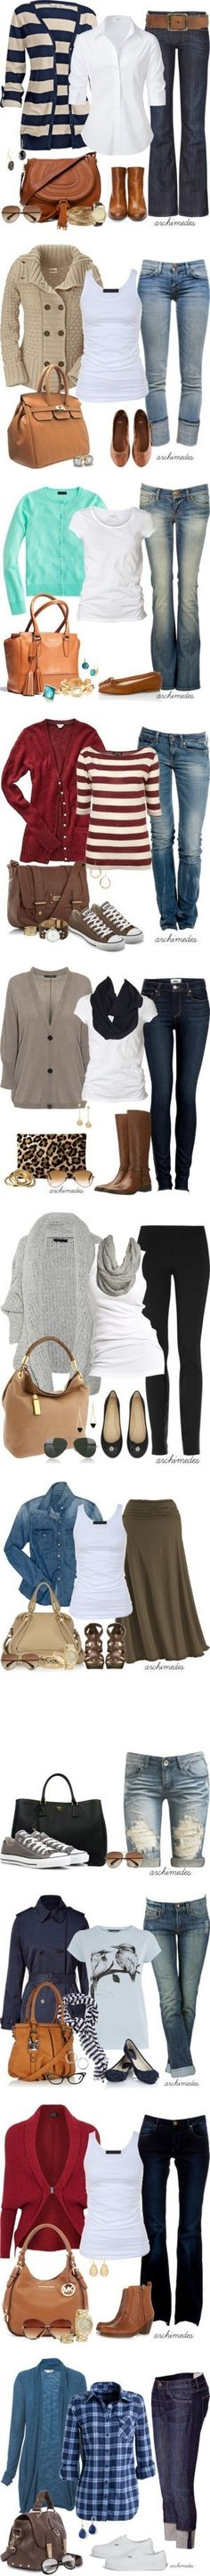 More fall outfits